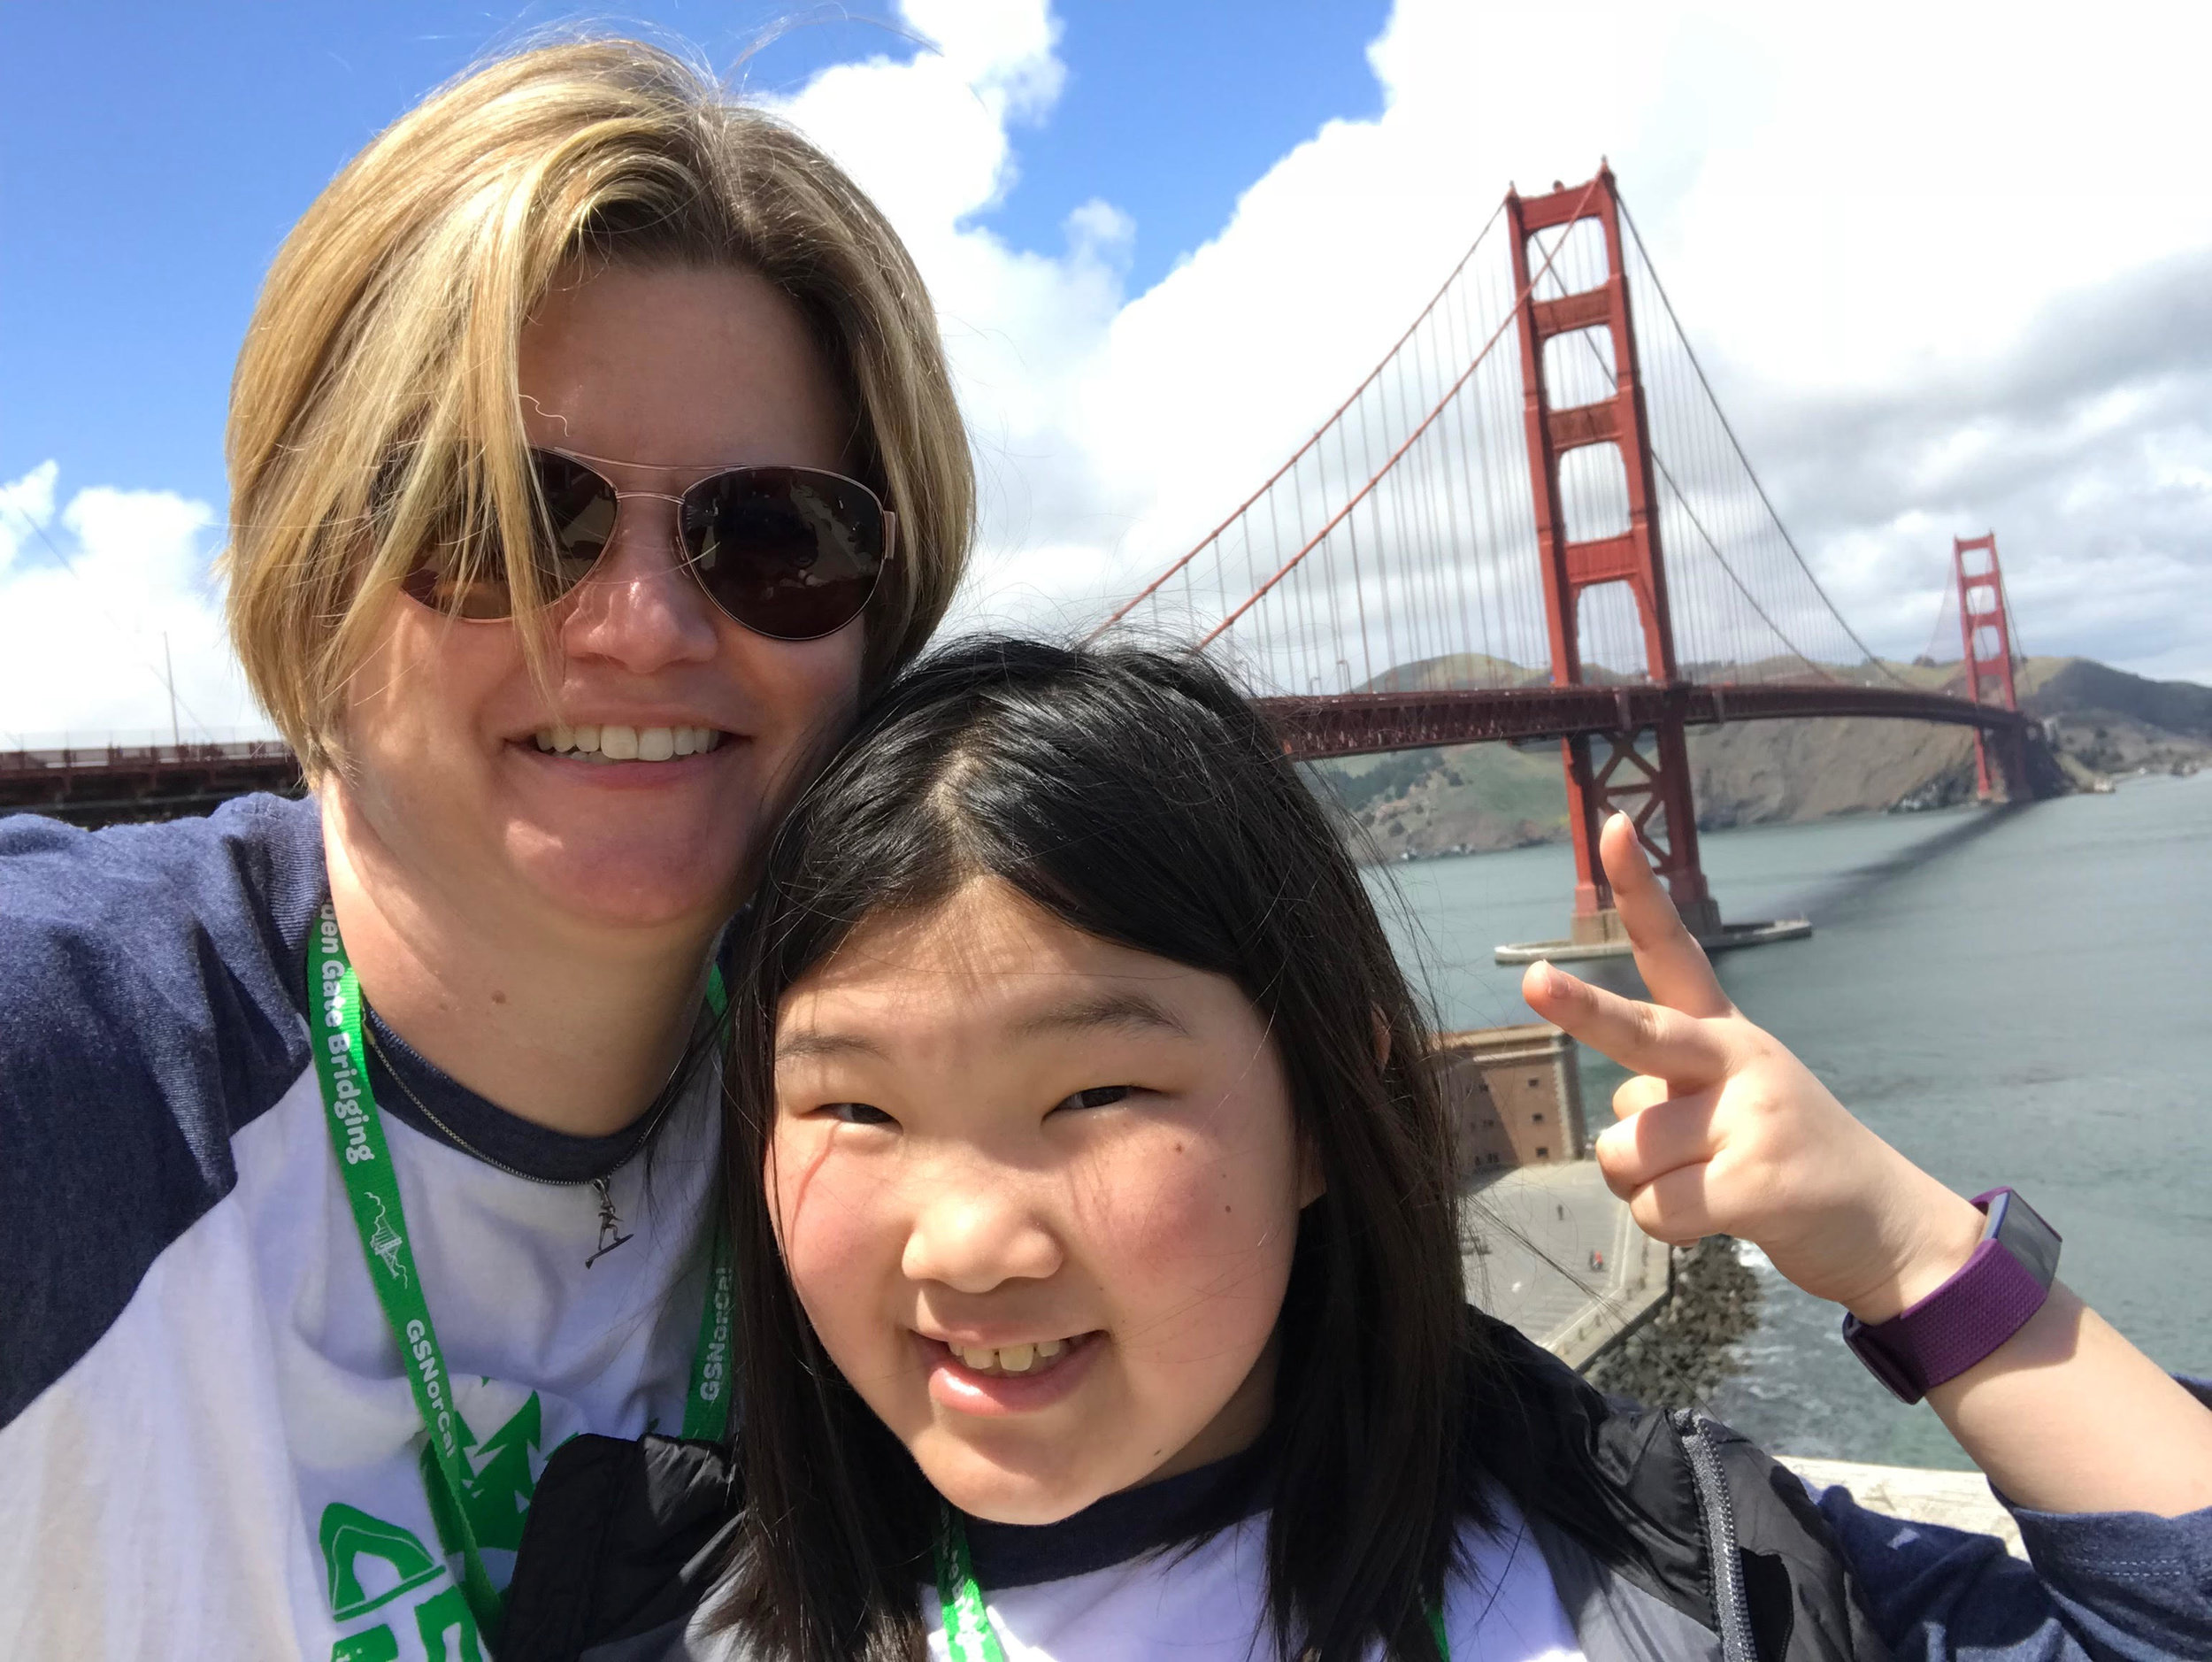 Megan and her mom, Jenny, after walking over the Golden Gate Bridge with the Girl Scouts (April 2018)